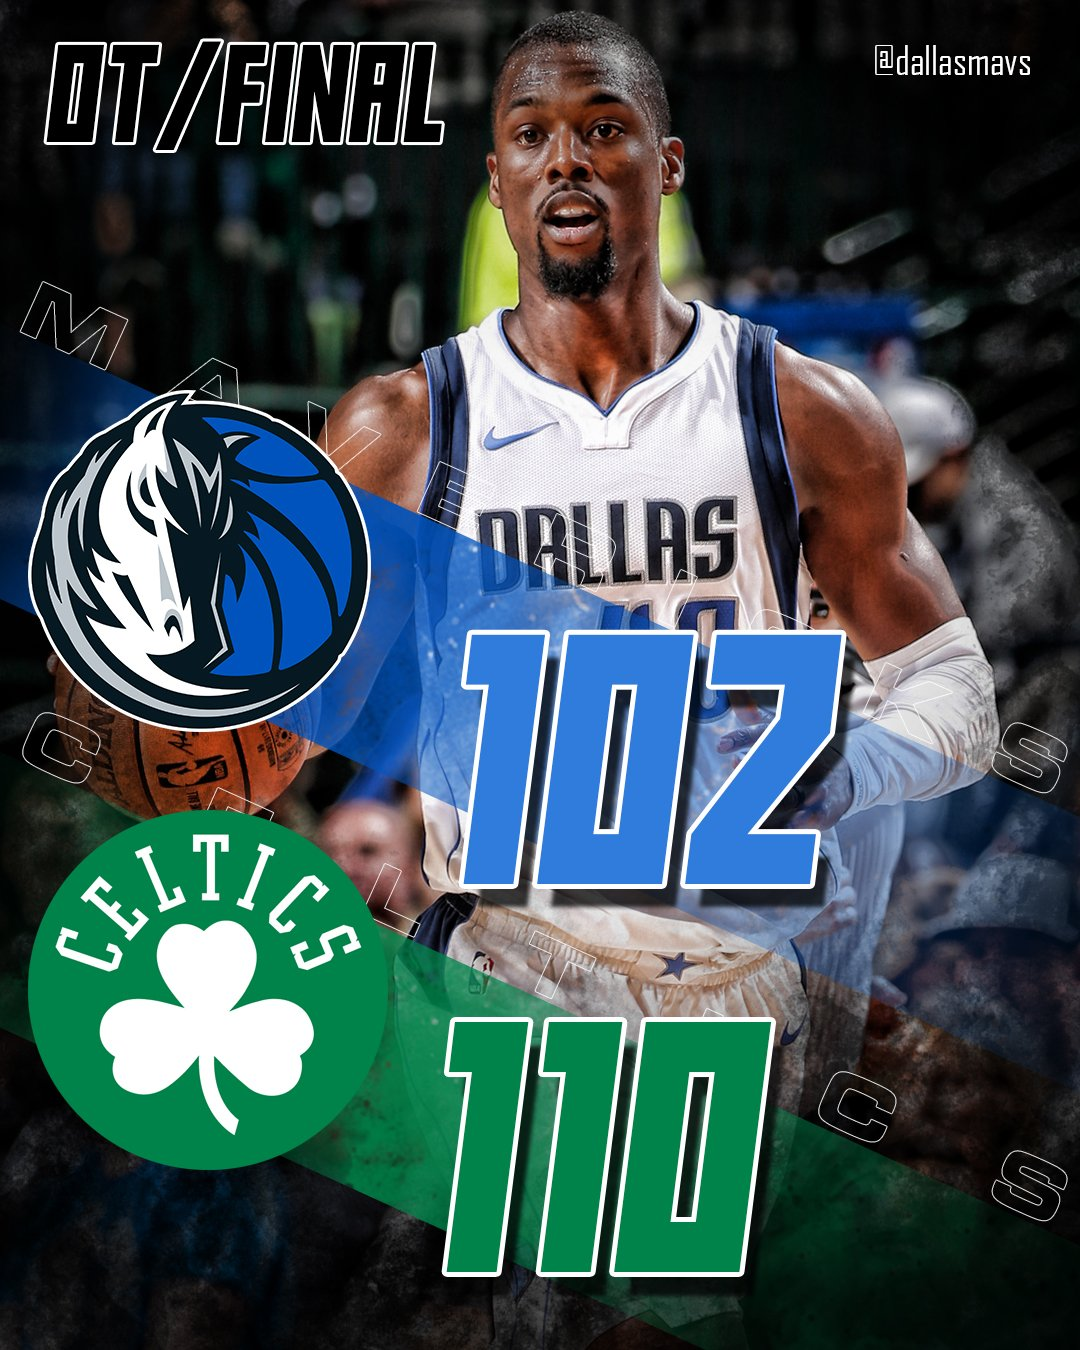 Mavs lose a tough one in OT to @celtics 110-102. @hbarnes 31 points 6 rebounds. @WessyWes23 had 18. #DALvsBOS https://t.co/AzCAMuBzti